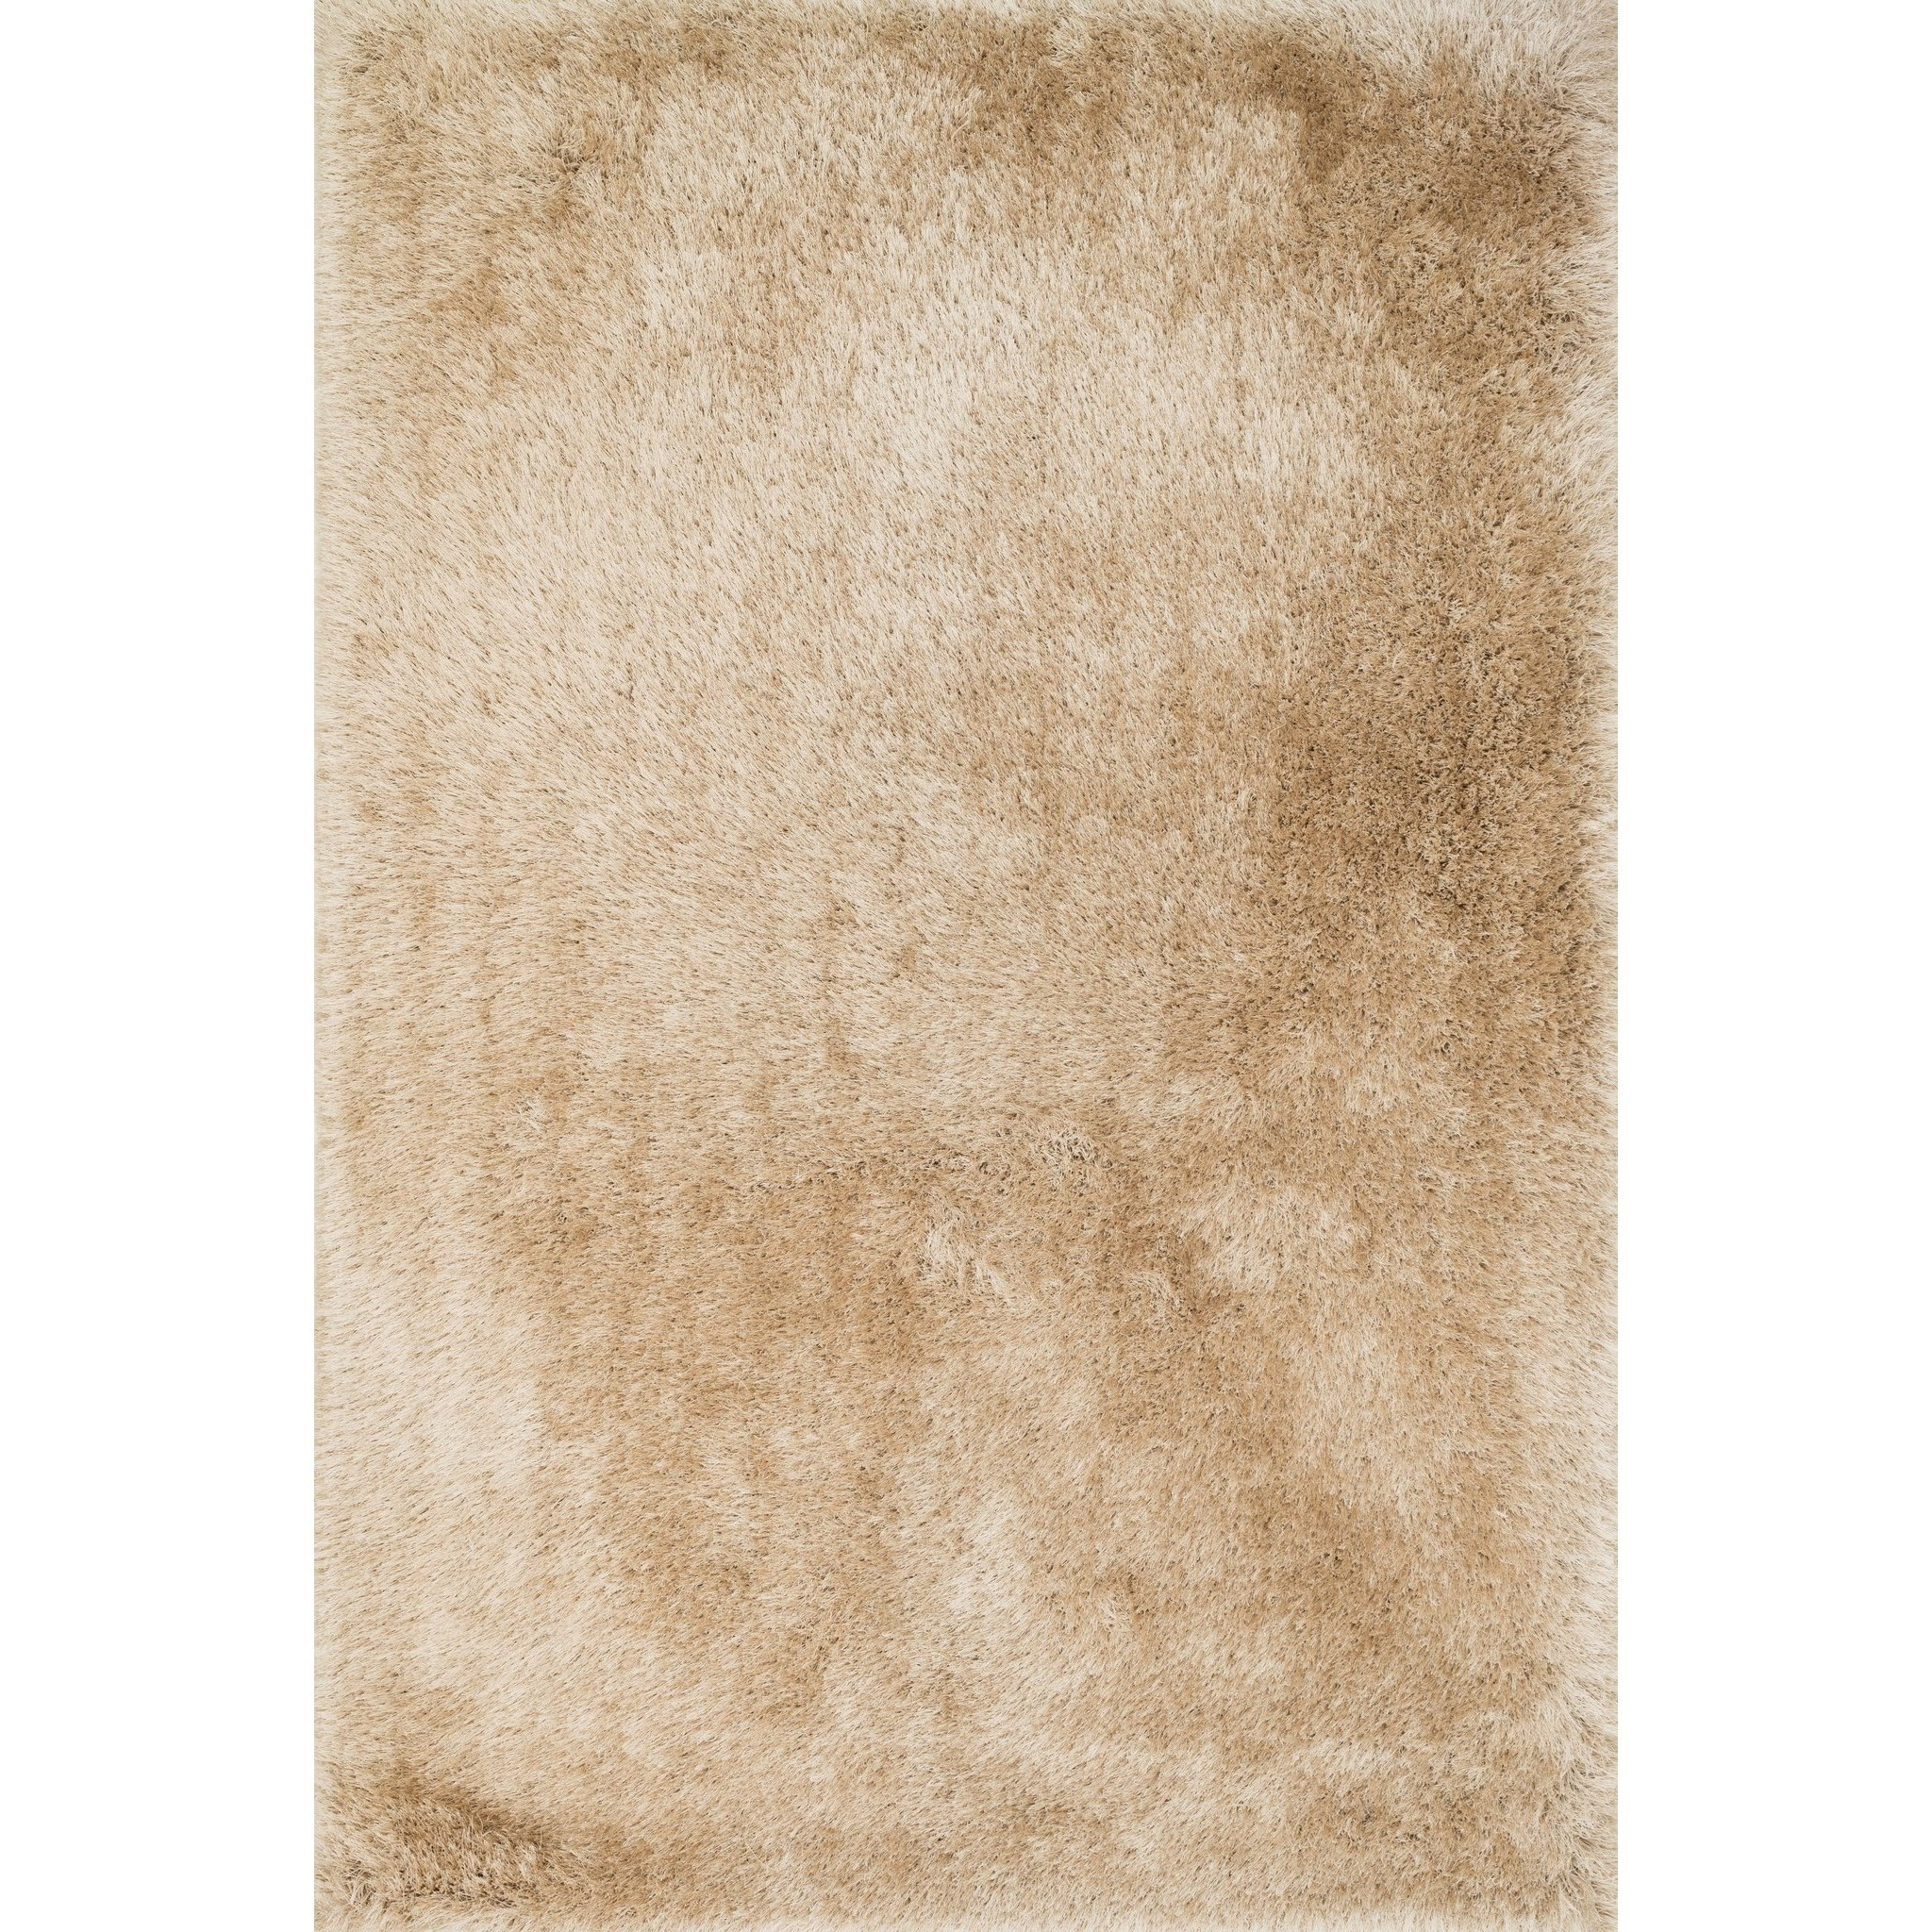 """Allure Shag 7'-6"""" x 9'-6"""" Area Rug by Loloi Rugs at Virginia Furniture Market"""